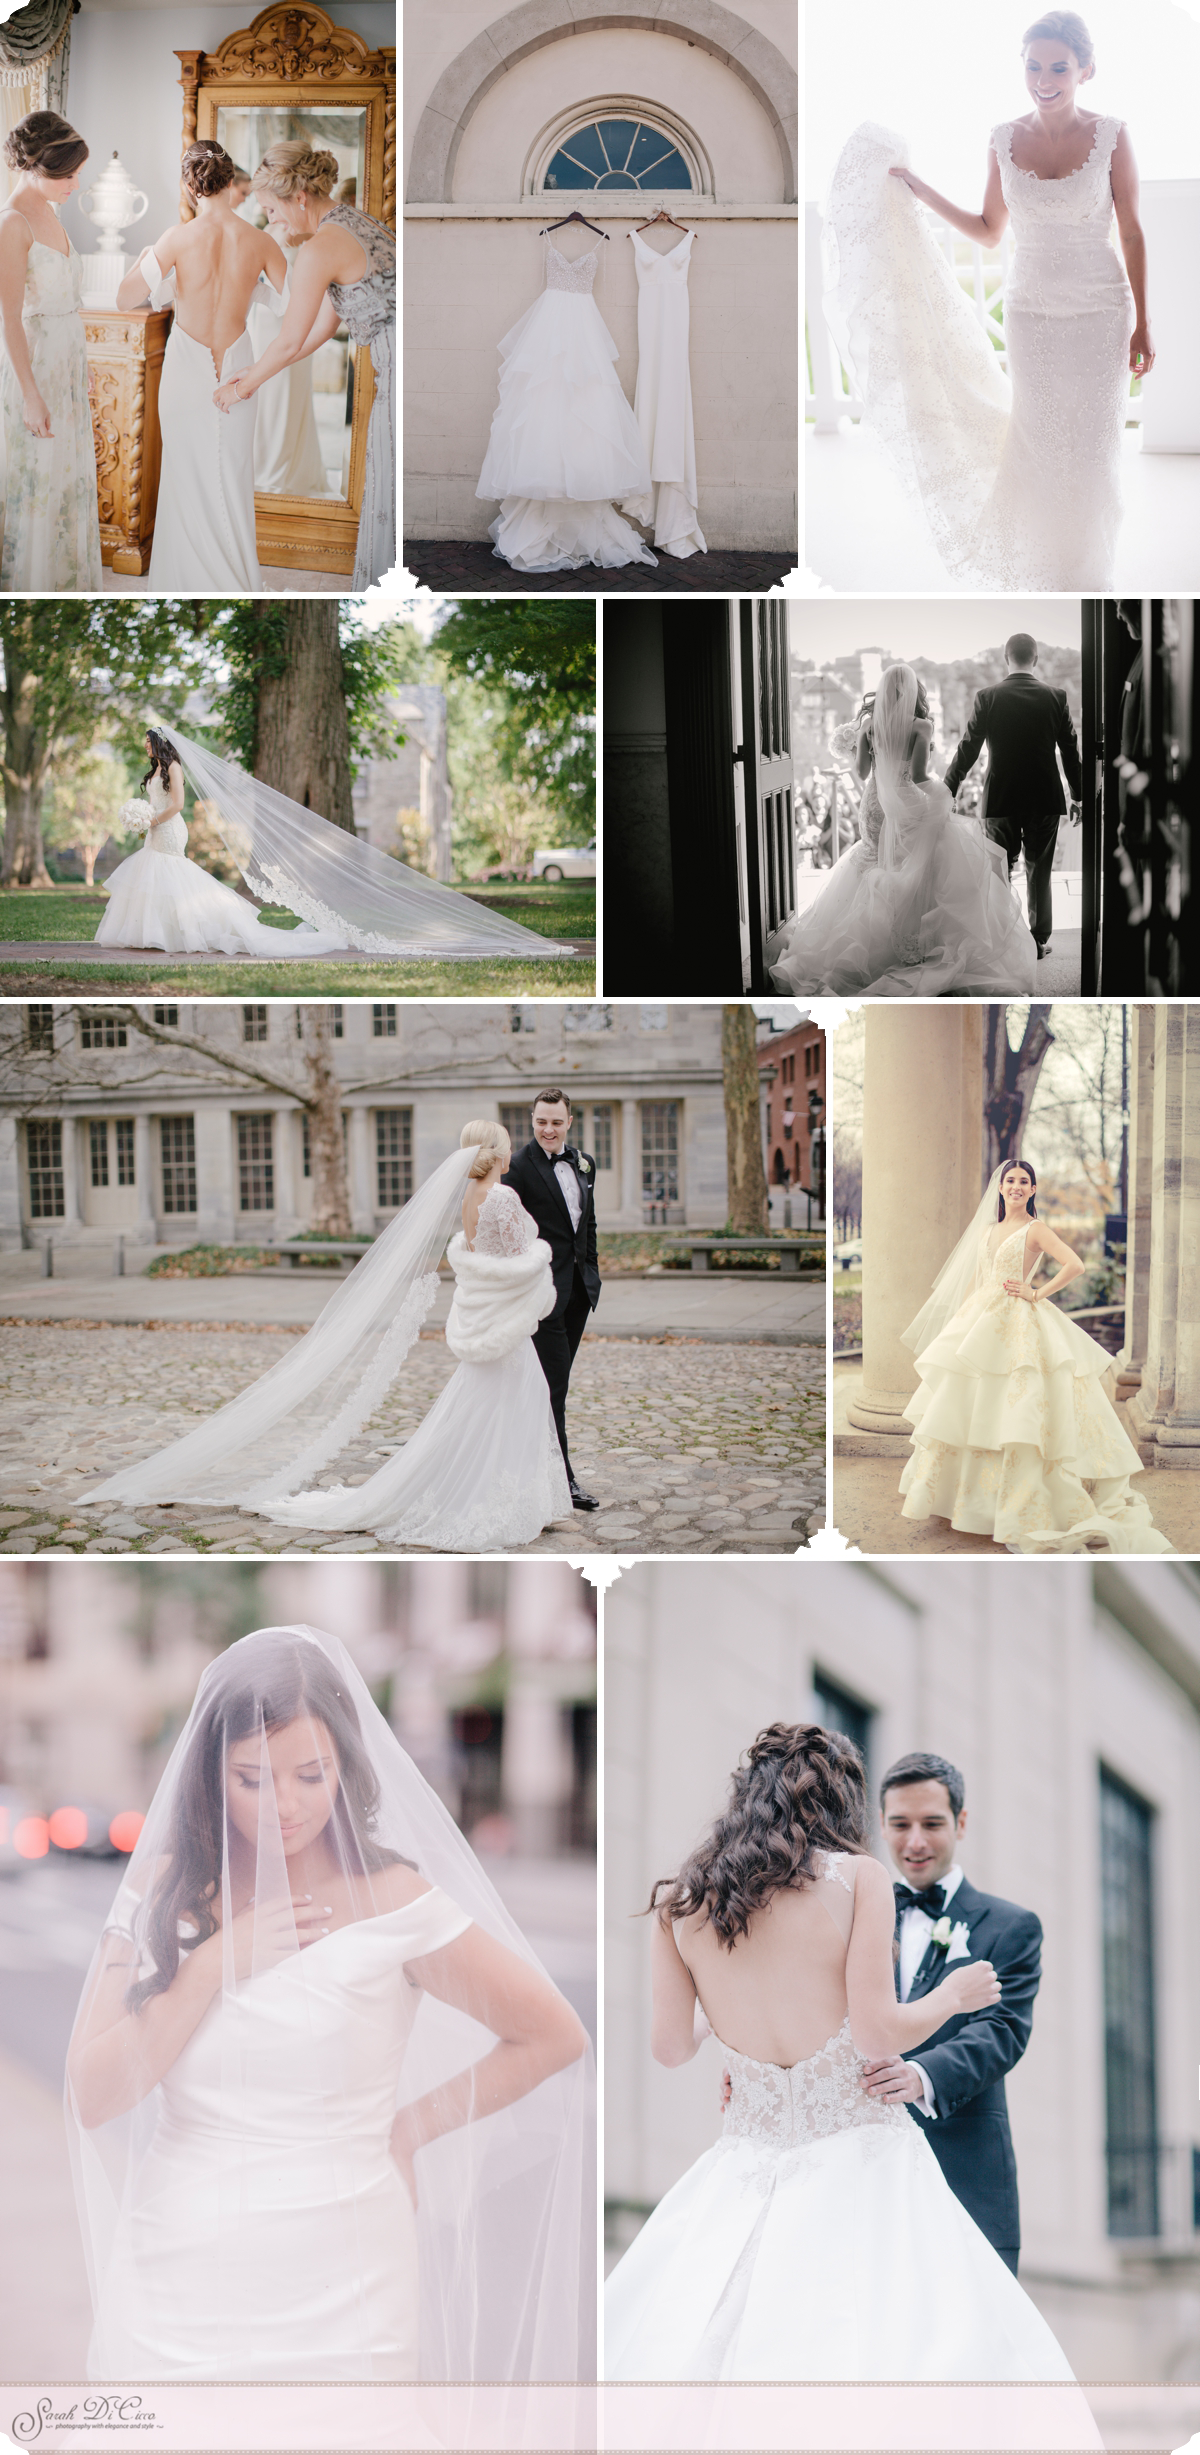 Dresses and Veils Sarah DiCicco Photography - Year in Review 2018